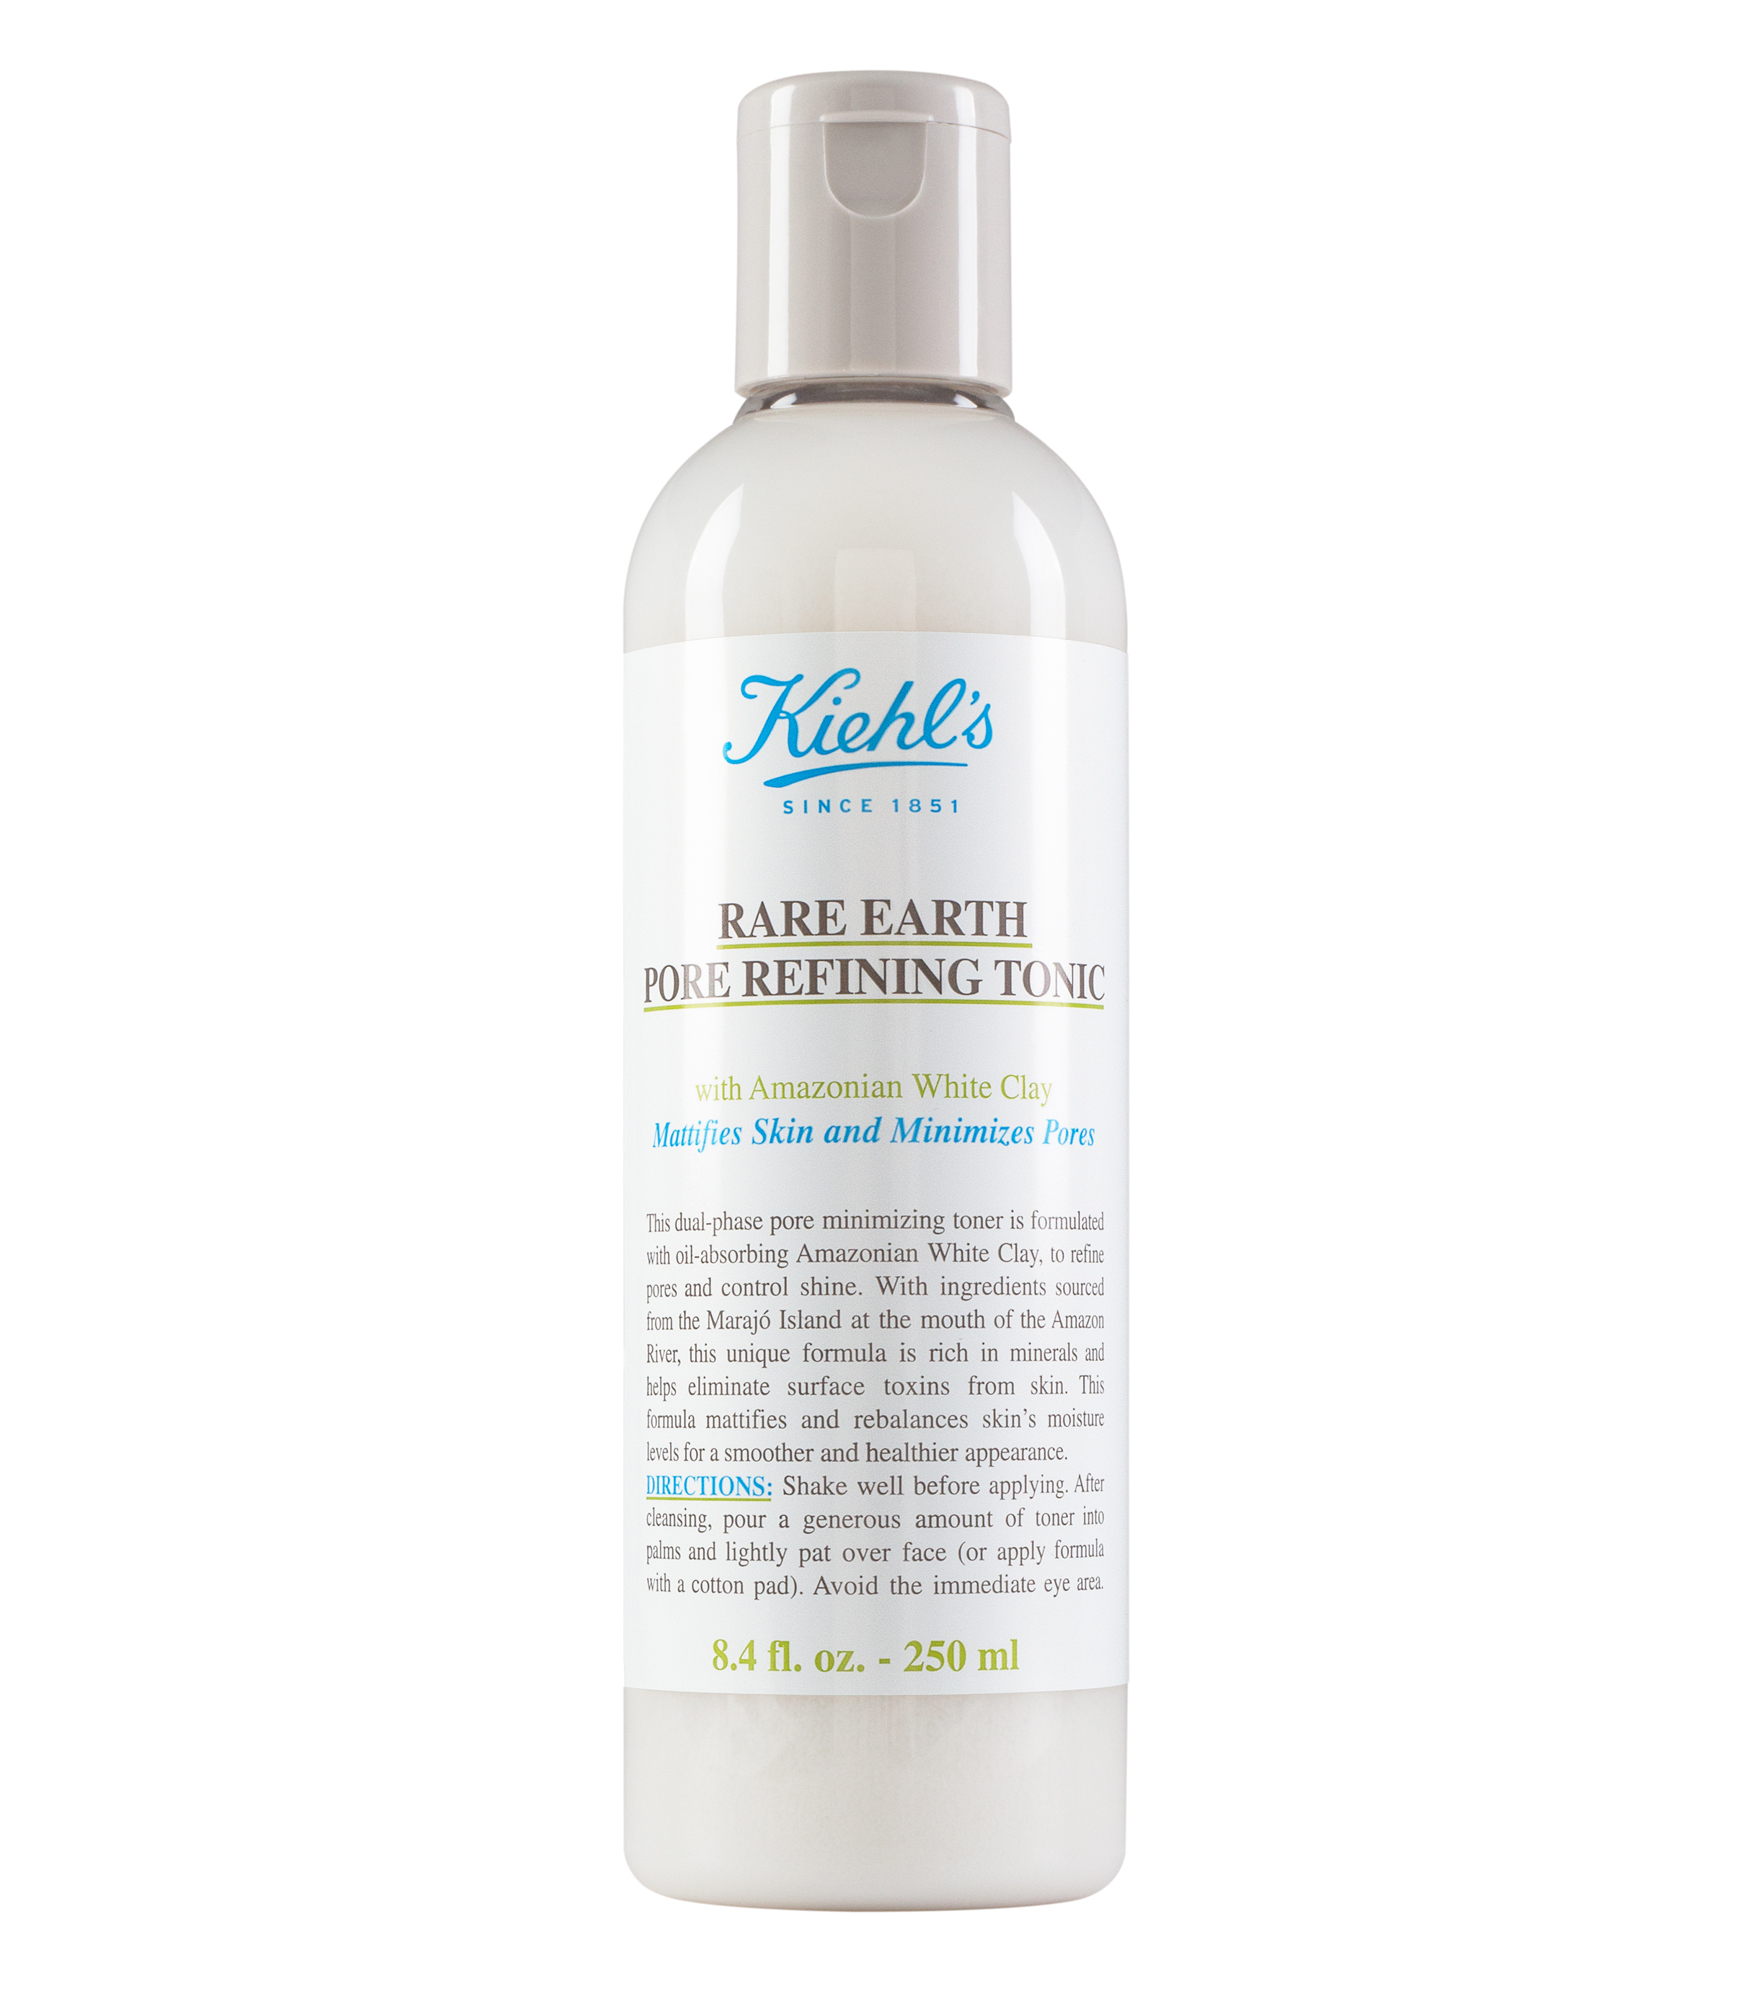 Image result for kiehl's rare earth pore refining tonic